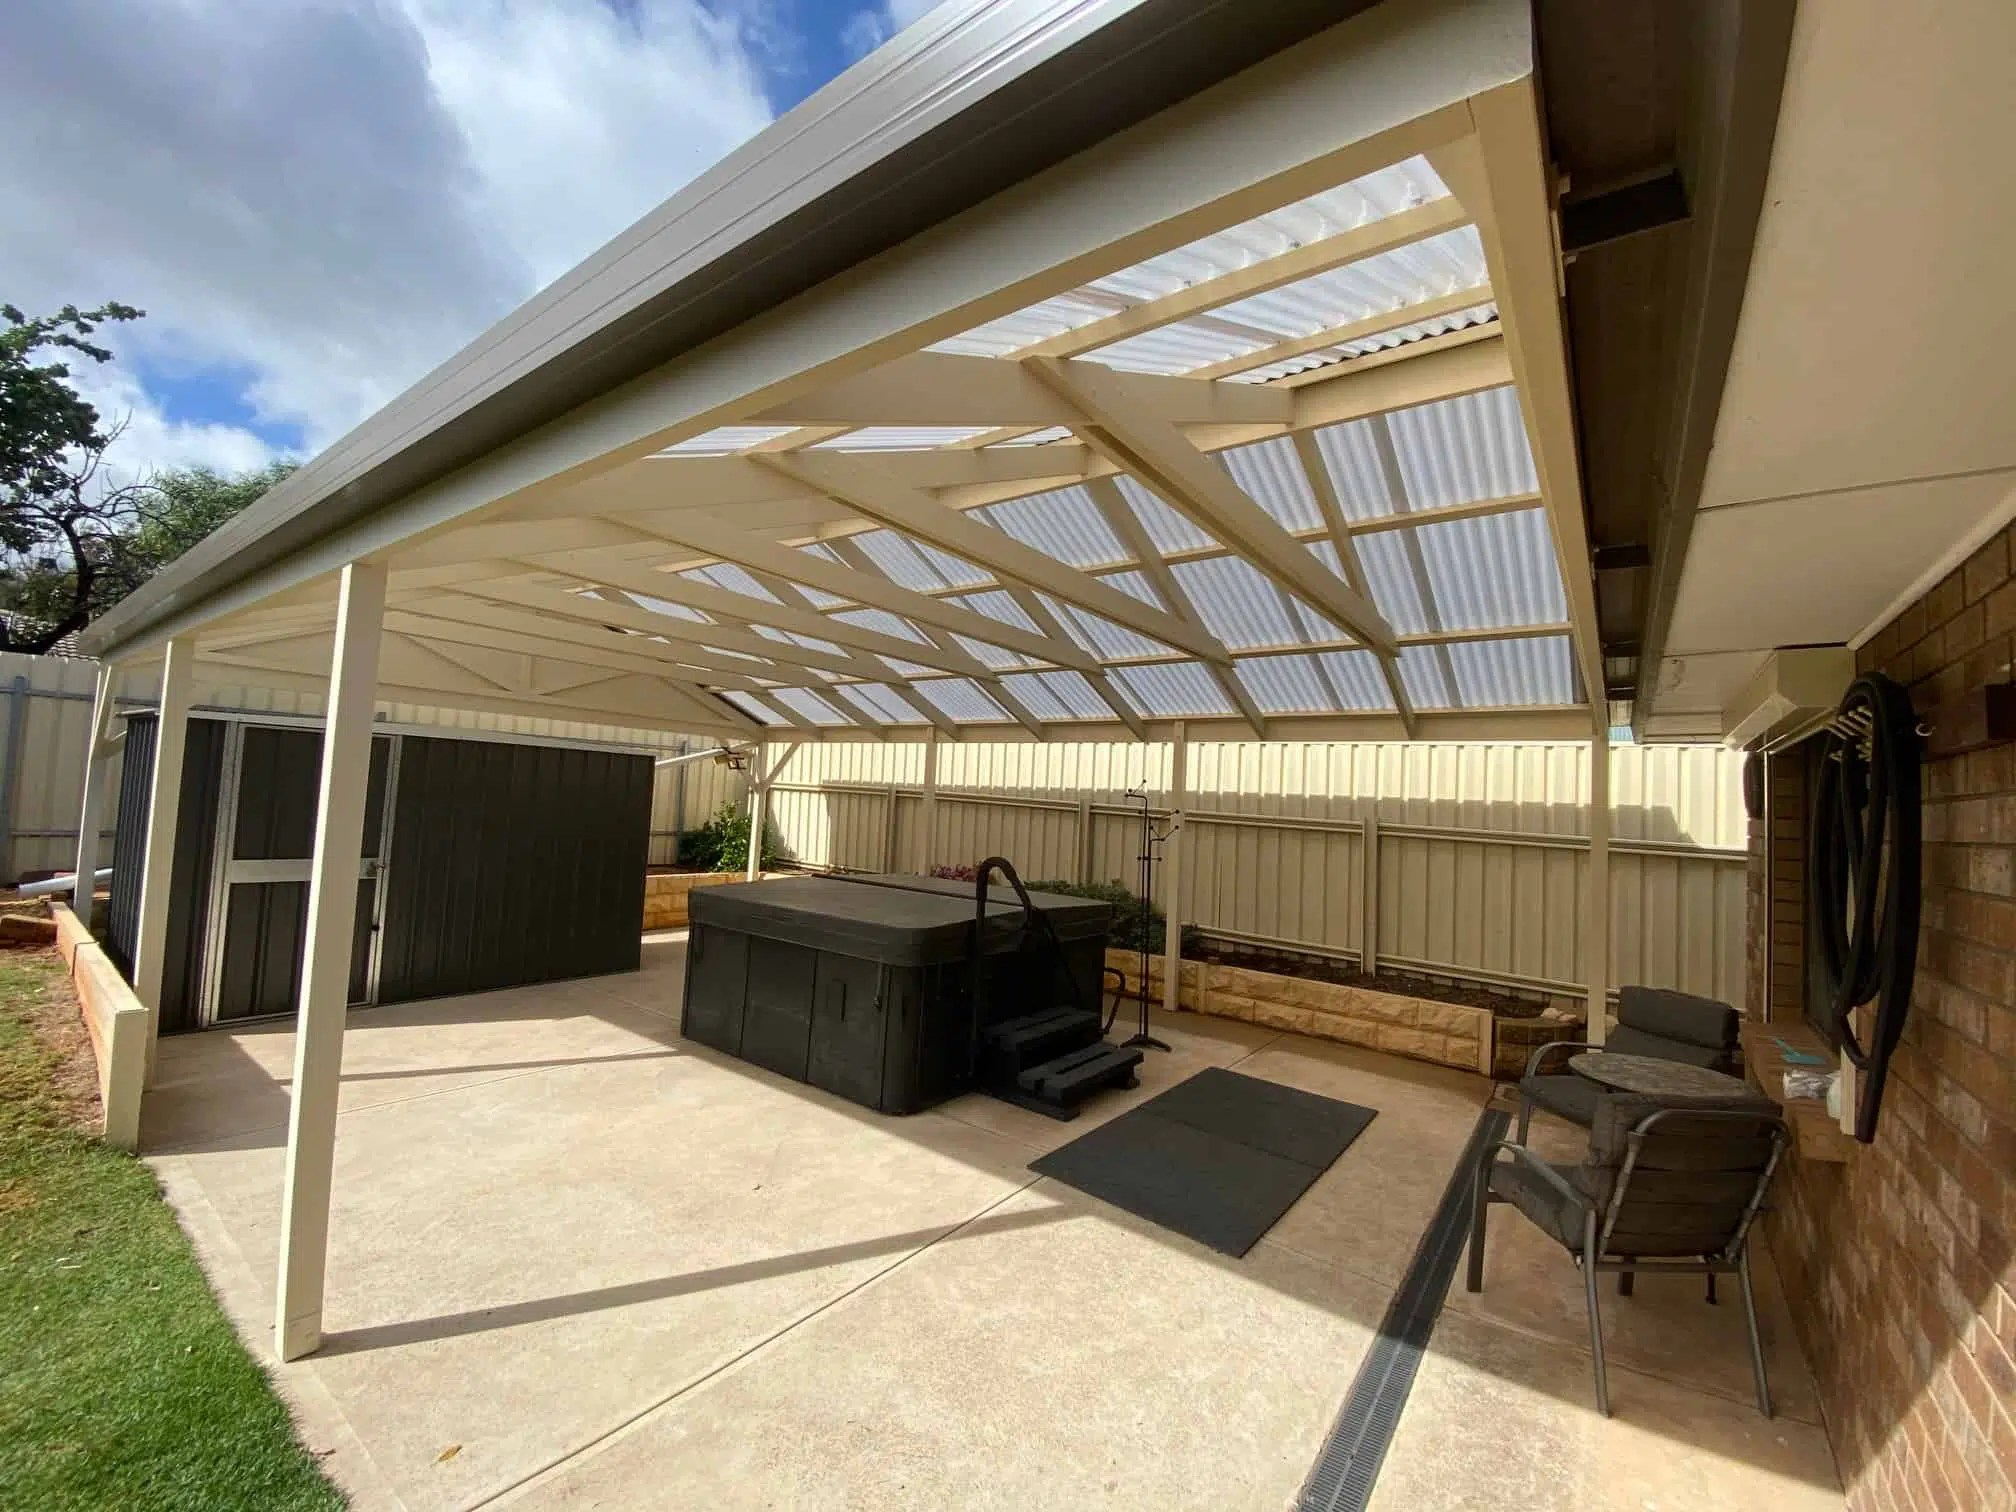 Timber Verandahs | MyLiving Outdoors on Myliving Outdoors  id=89488